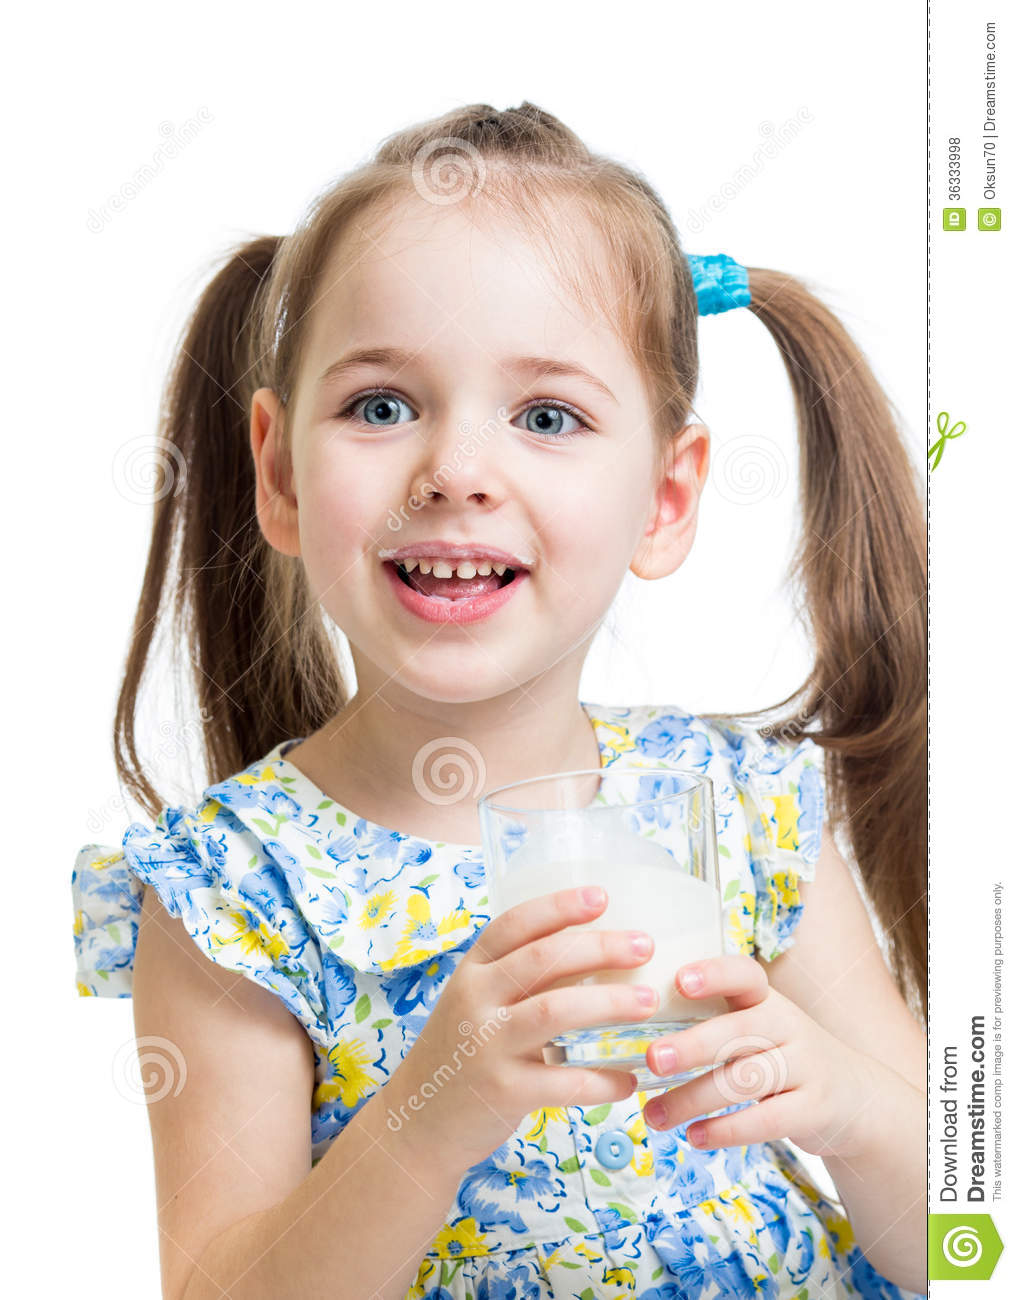 Kid Girl Drinking Yogurt Or Kefir Royalty Free Stock Photos - Image ...